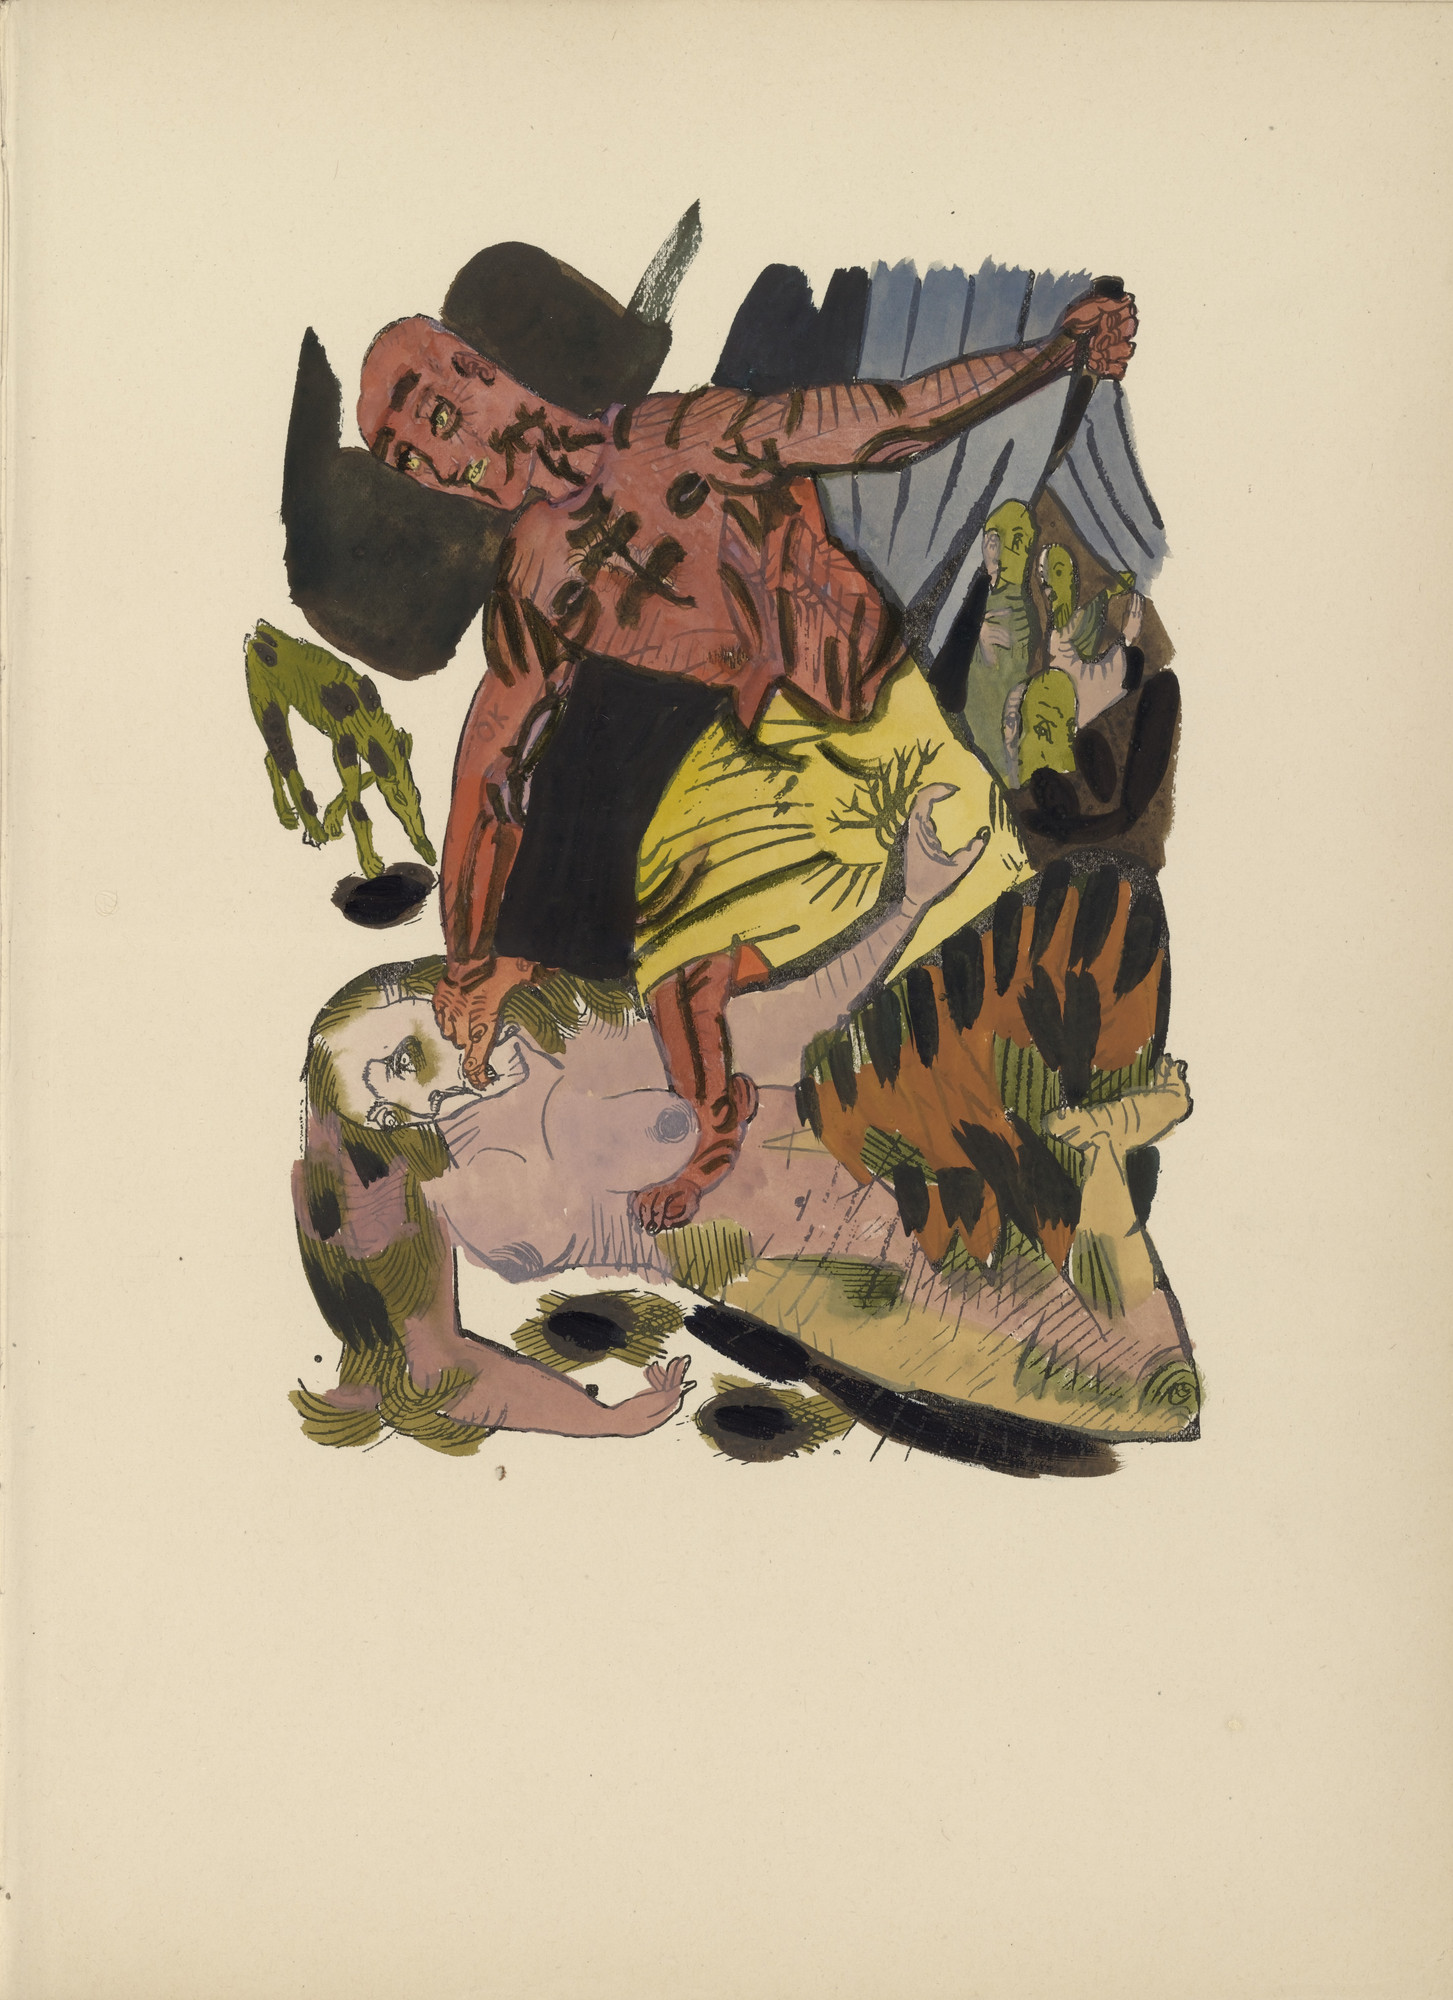 Oskar Kokoschka. Plate (folio 8) from Mörder, Hoffnung der Frauen (Murderer, Hope of Women). (1916)